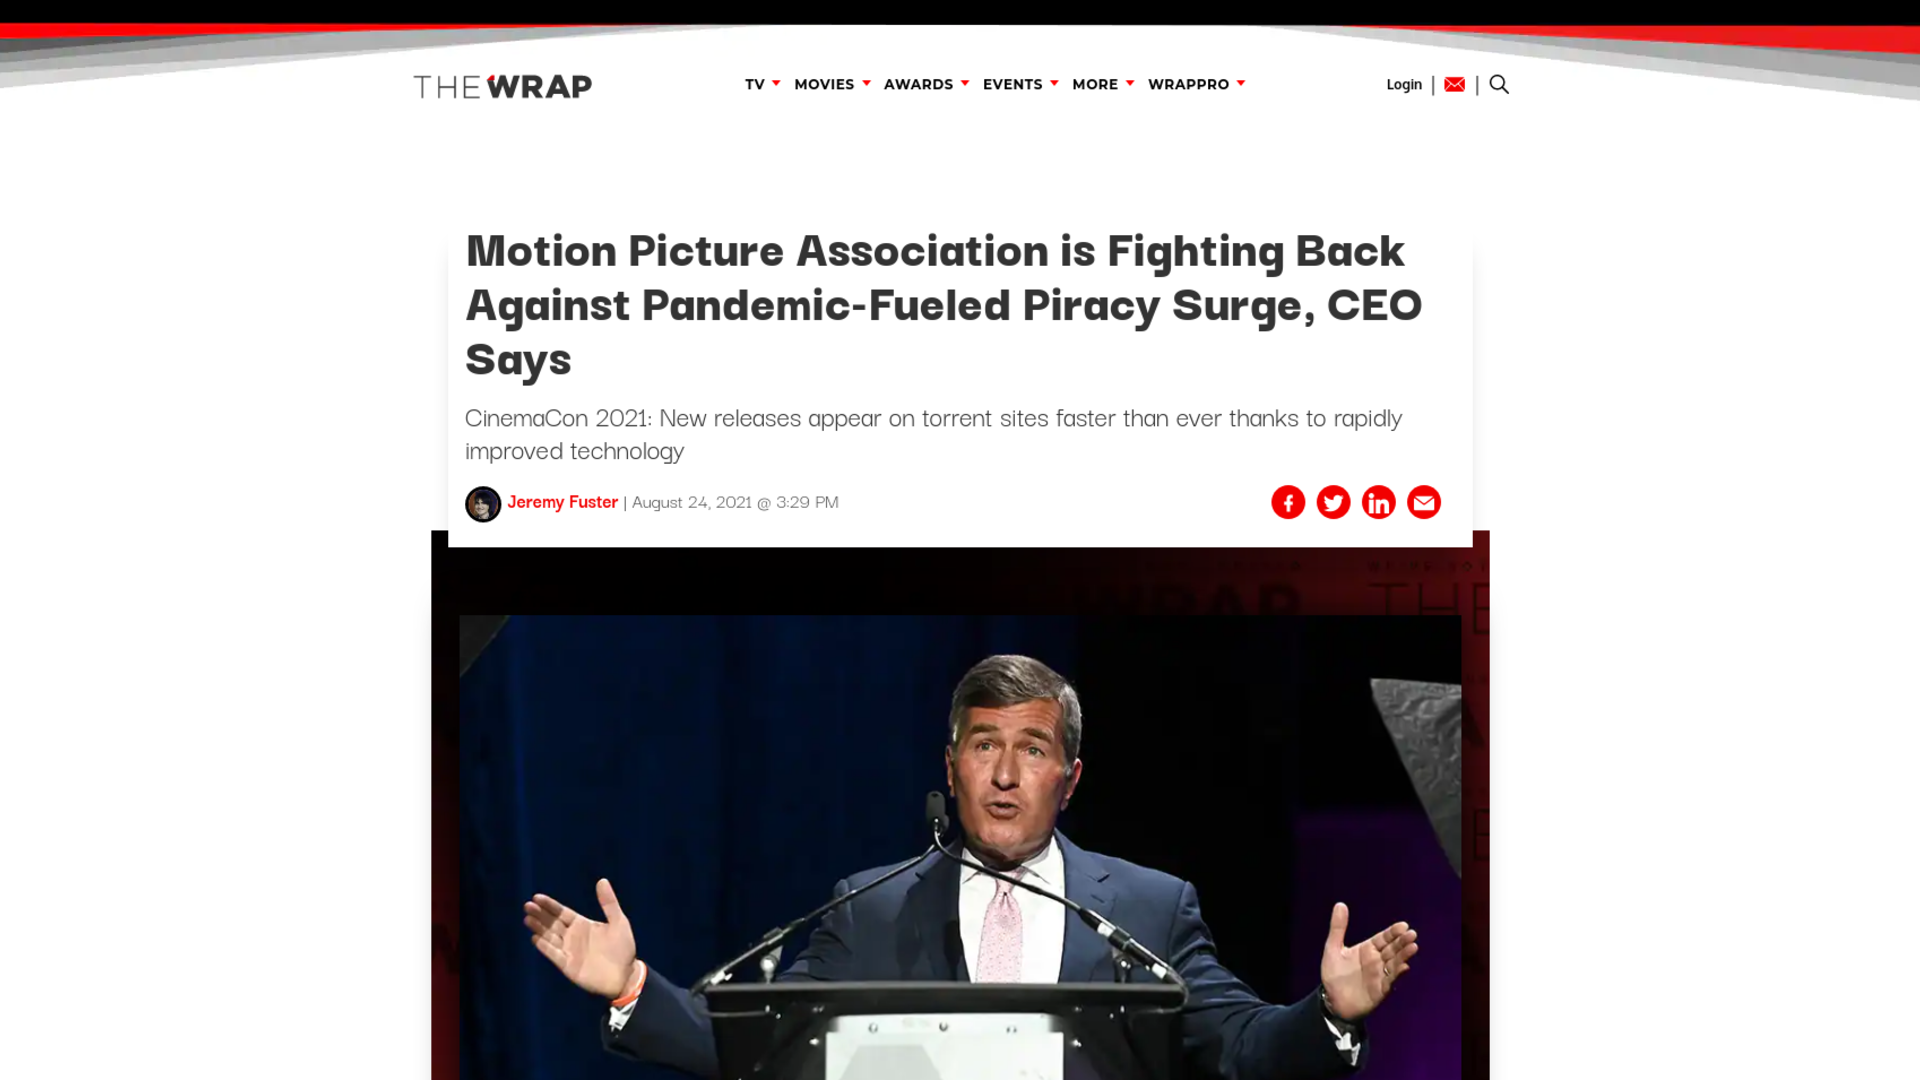 Fairness Rocks News Motion Picture Association is Fighting Back Against Pandemic-Fueled Piracy Surge, CEO Says